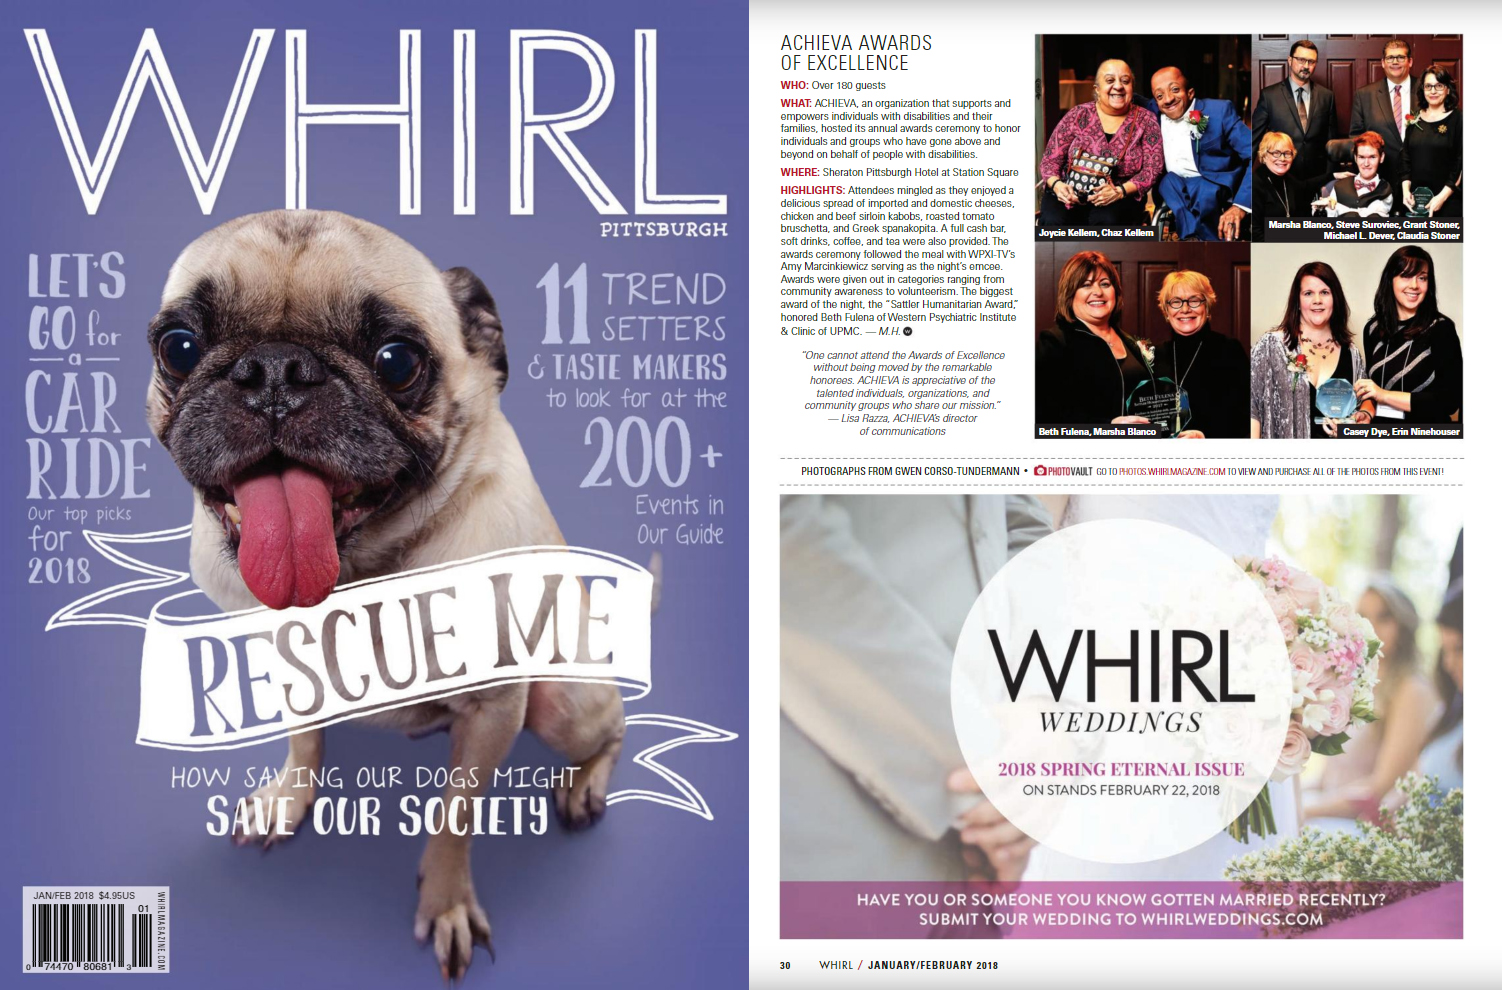 Whirl Jan Feb 18 cover and feature